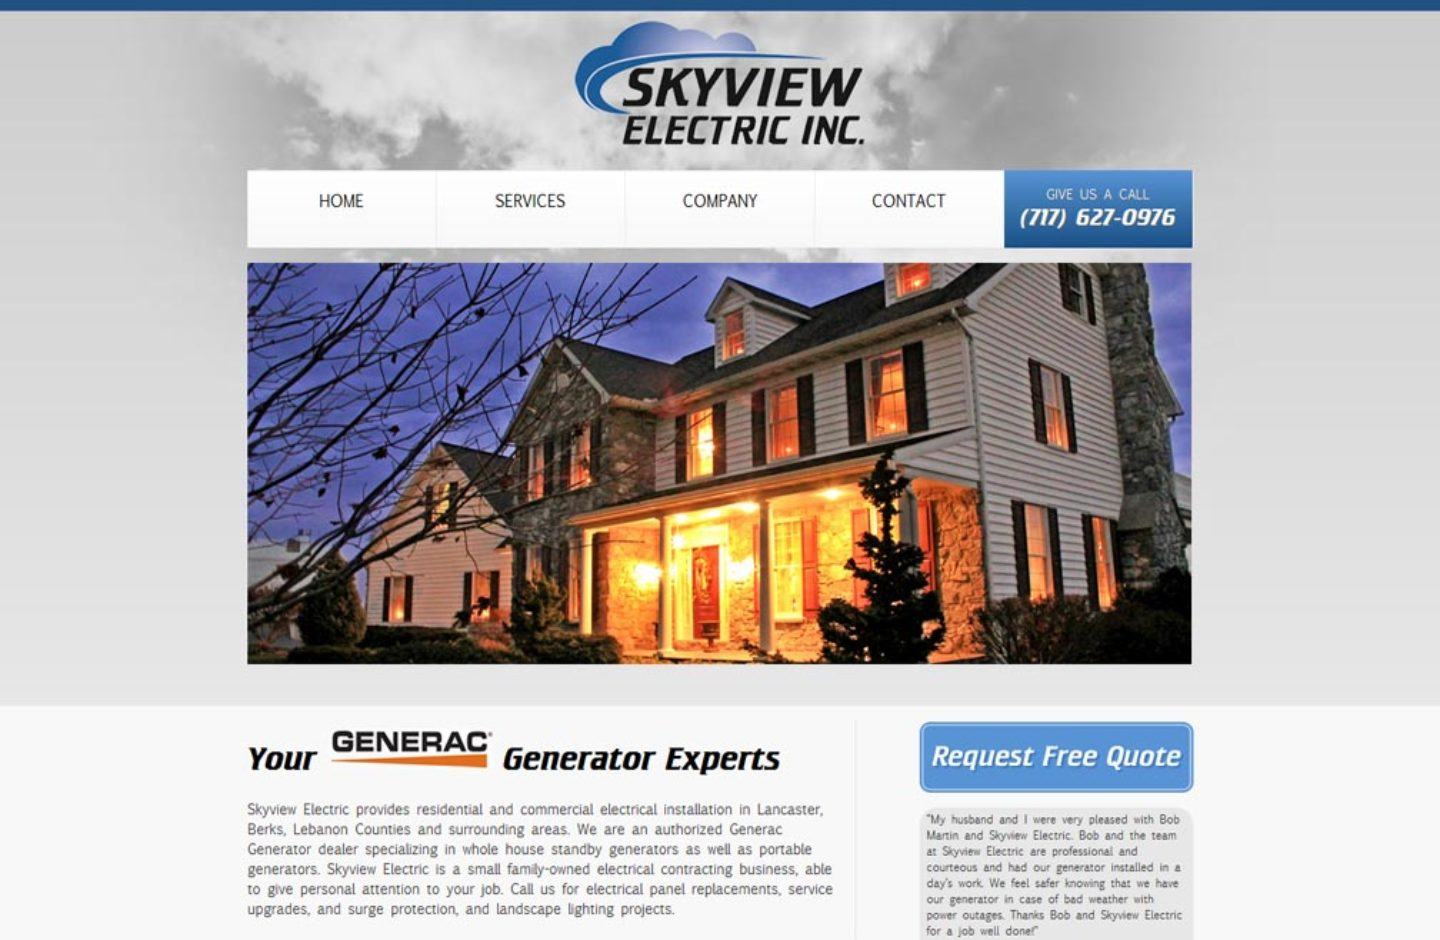 Skyview Electric